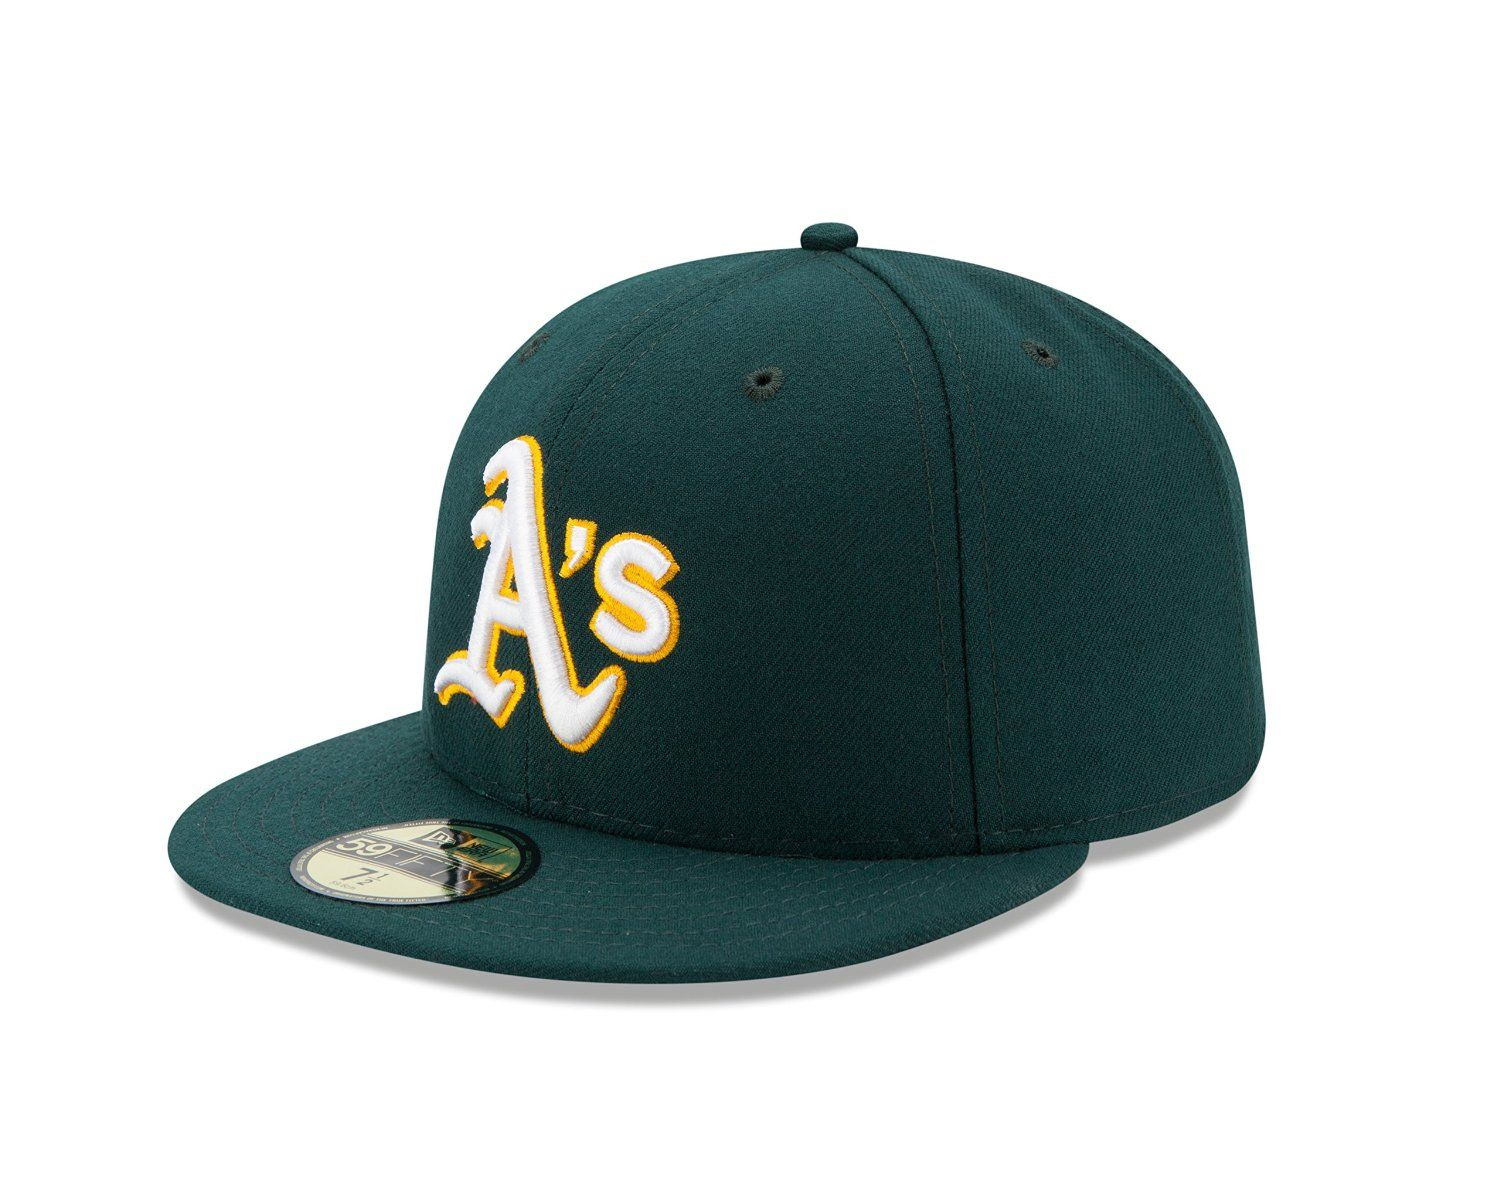 MLB Oakland Athletics Alt AC On Field 59Fifty Baseball Cap Azul 7 5 8   Amazon.com.mx  Deportes y Aire Libre d4ffc7c1fb1